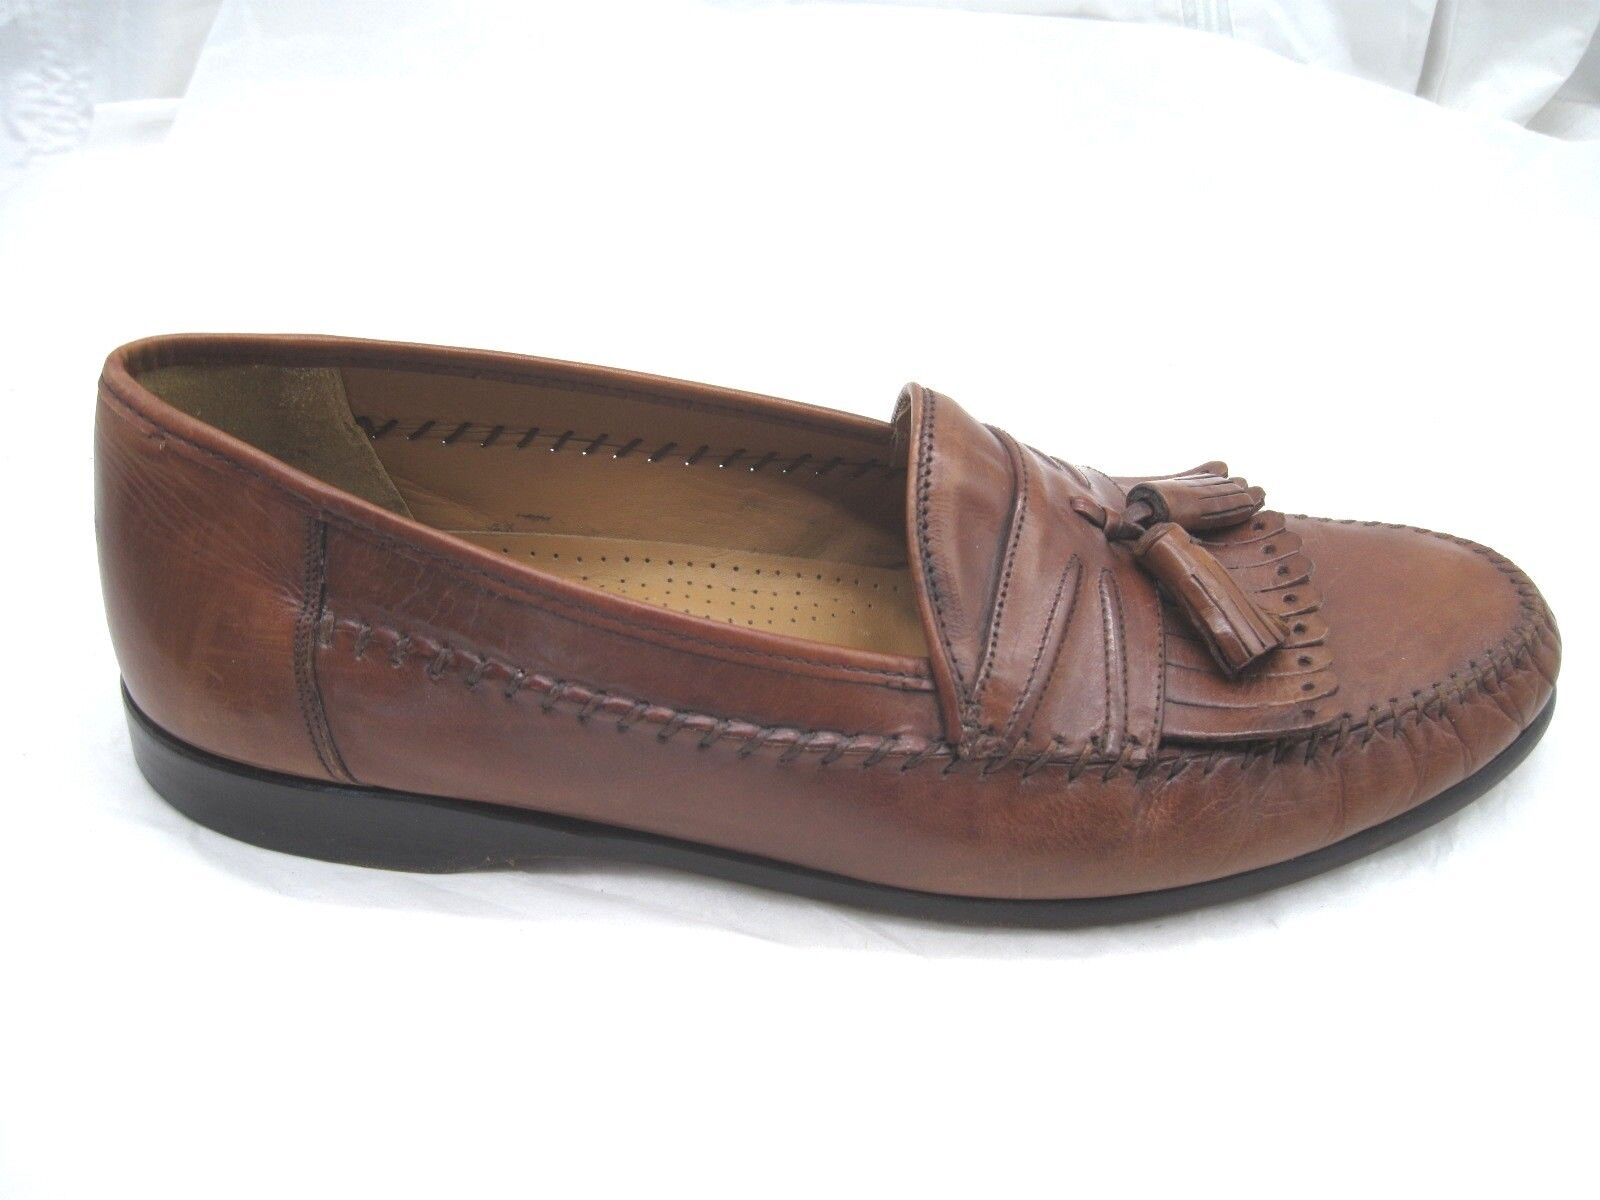 Sandro Moscolini Laser brown leather loafers Mens tassel dress shoes sz 10.5M